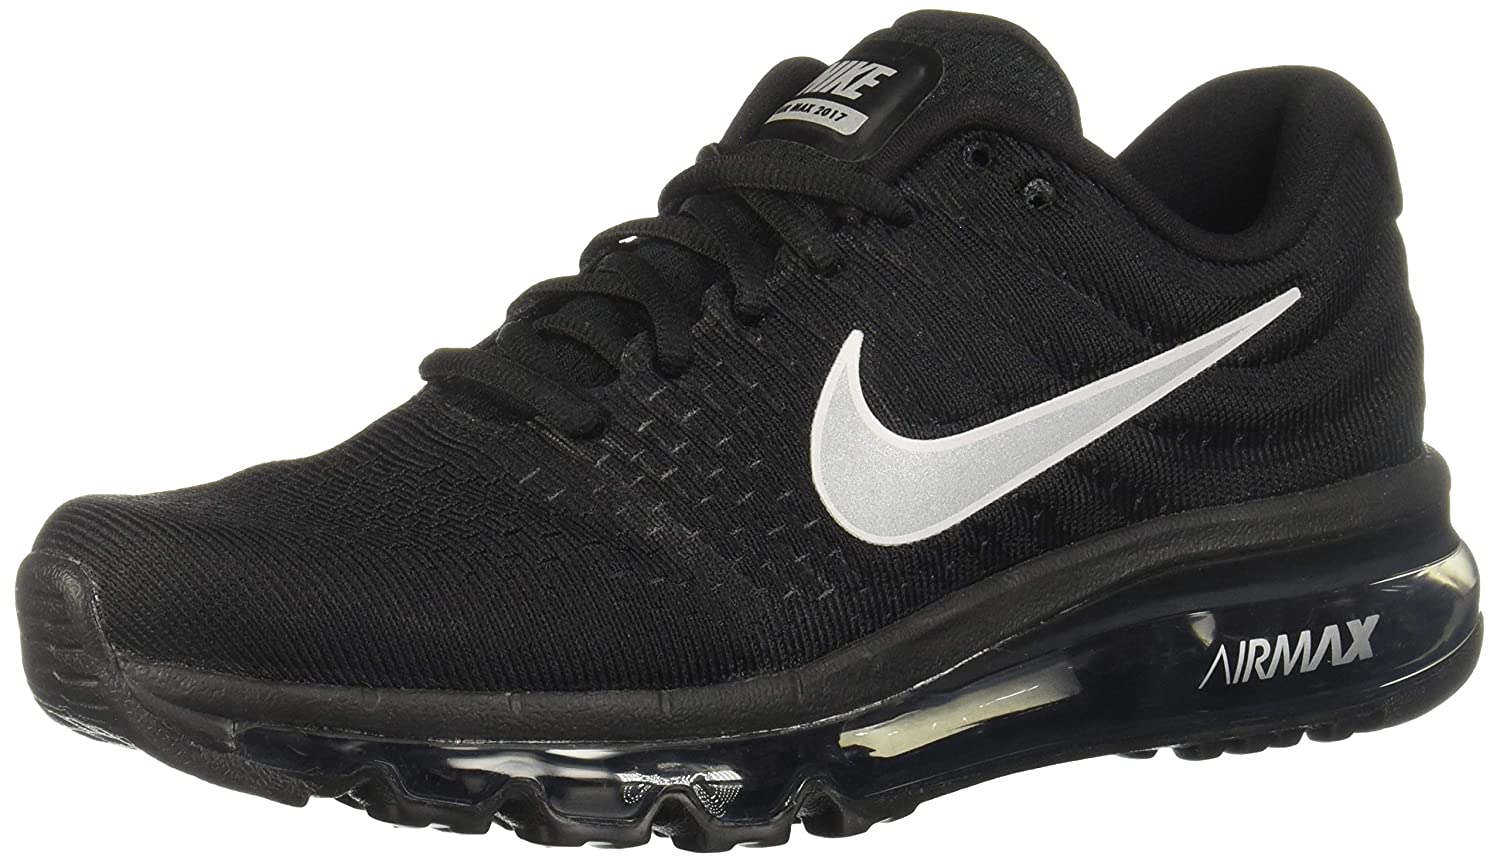 on sale a32a2 36f36 Amazon.com   Nike Womens Air Max 2017 Running Shoes Black White Anthracite  849560-001 Size 10   Road Running